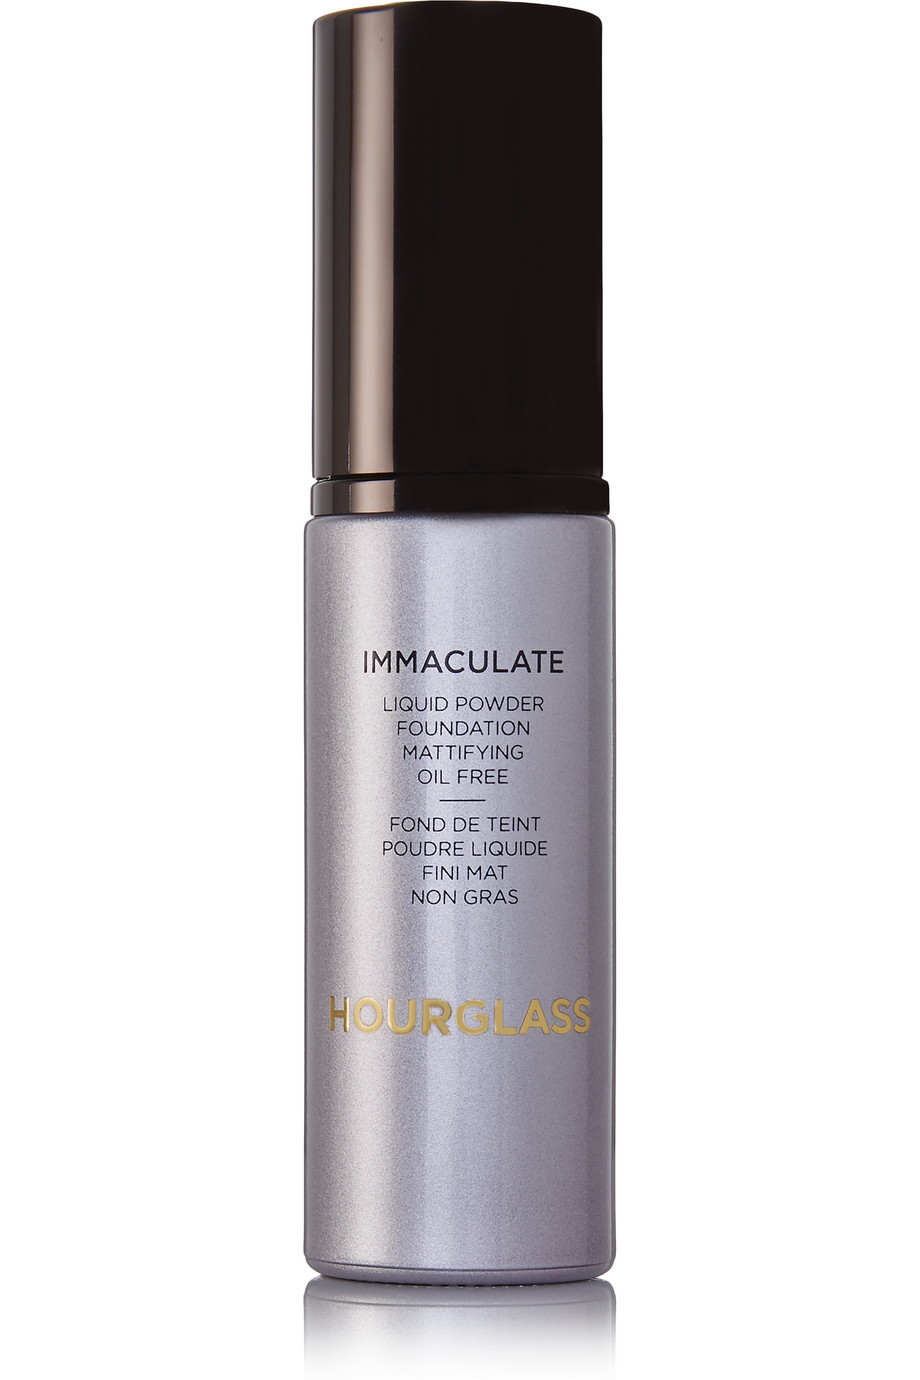 Hourglass Immaculate Liquid Powder Foundation - Light Beige, 30ml